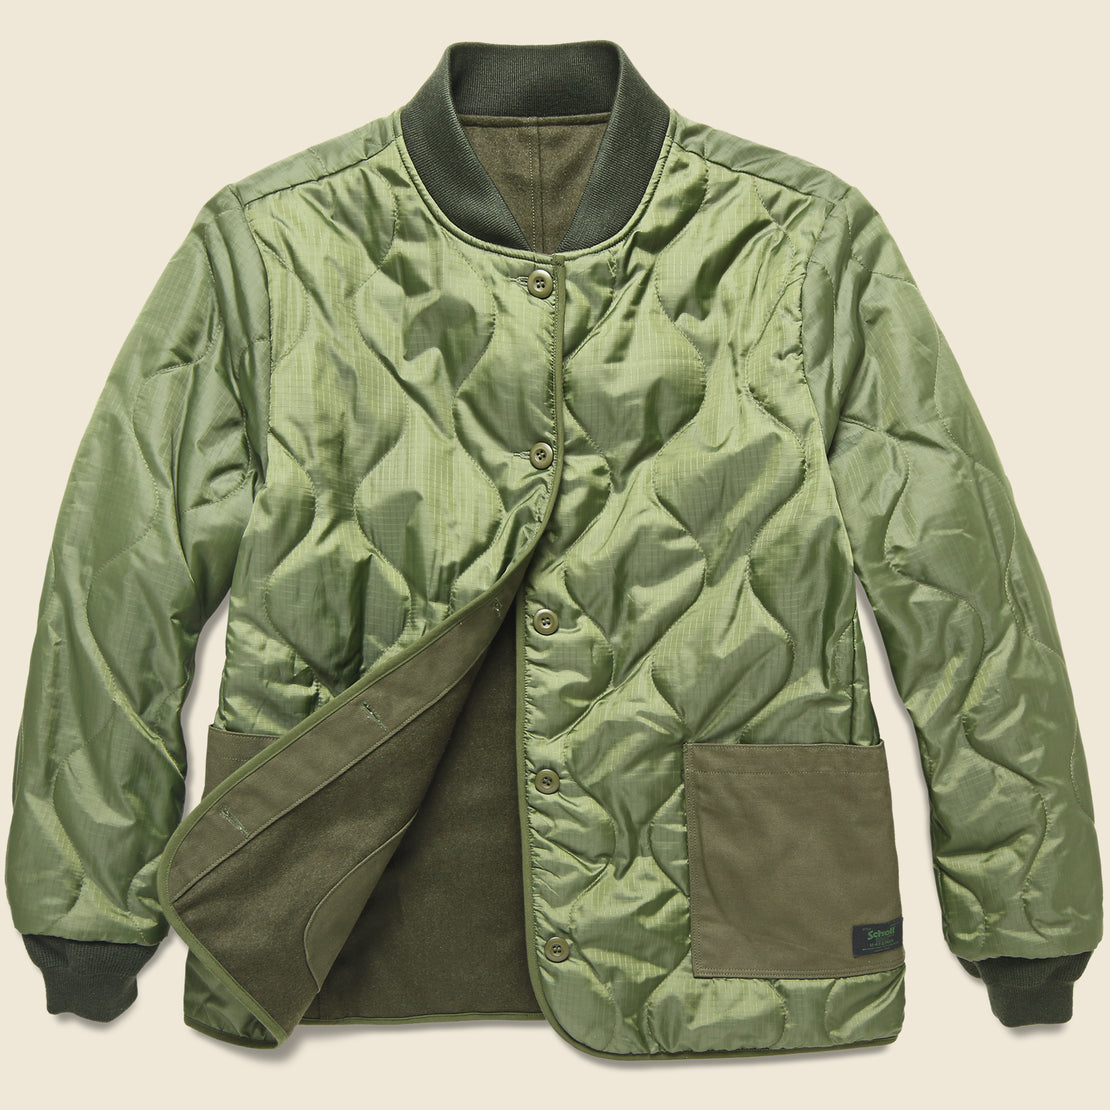 Schott Flight Jacket Liner - Olive